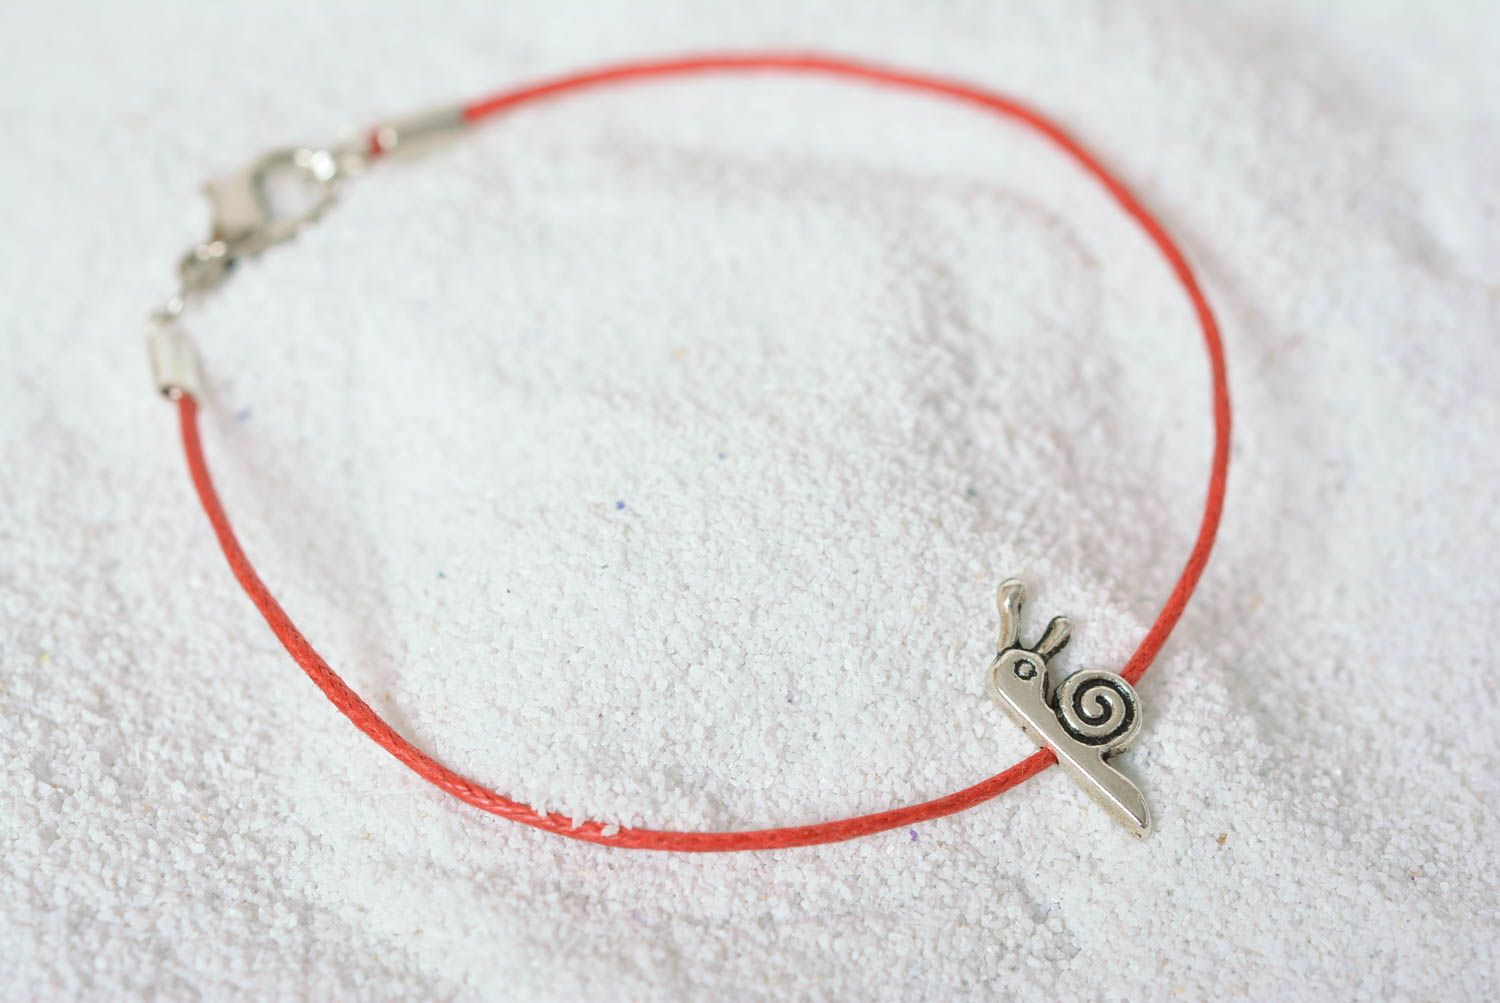 Textile Bracelets String Bracelet Handmade Charm Fashion Accessories Cool Gifts Madeheart